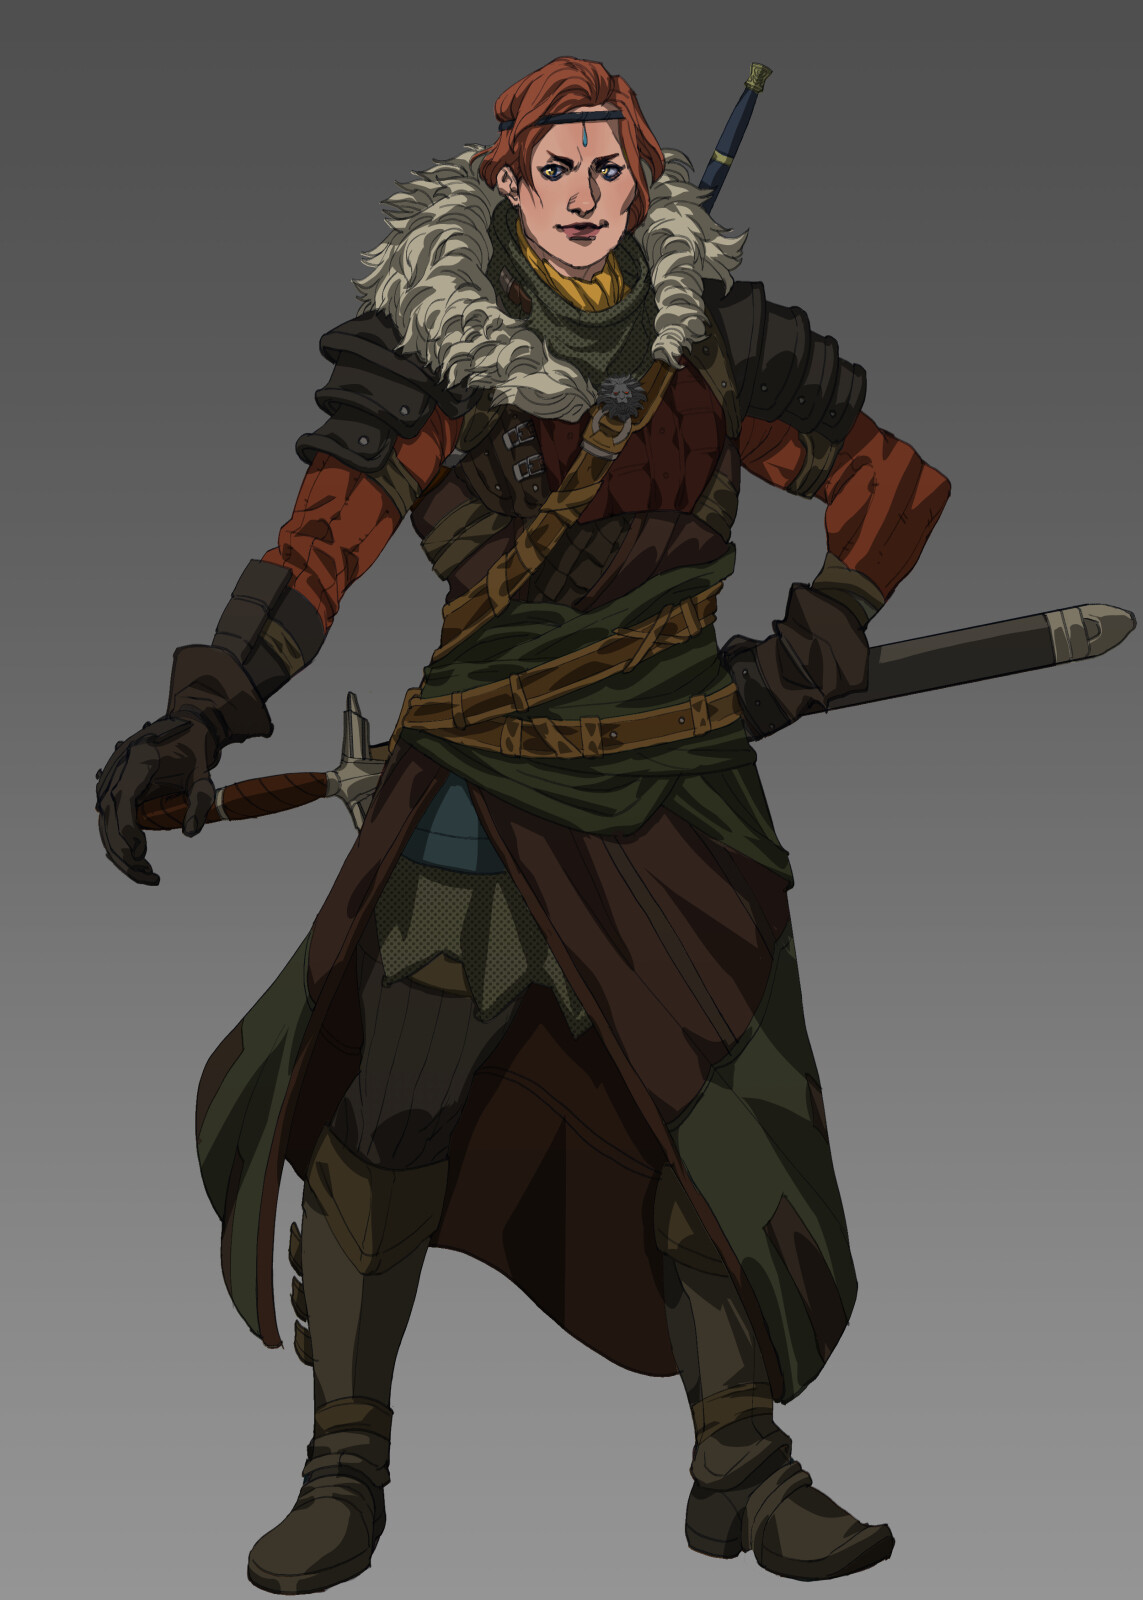 Tamlin from the school of the lion. She was among the first of her school to join the battlefield against an invading force that used monsters in its conquests.